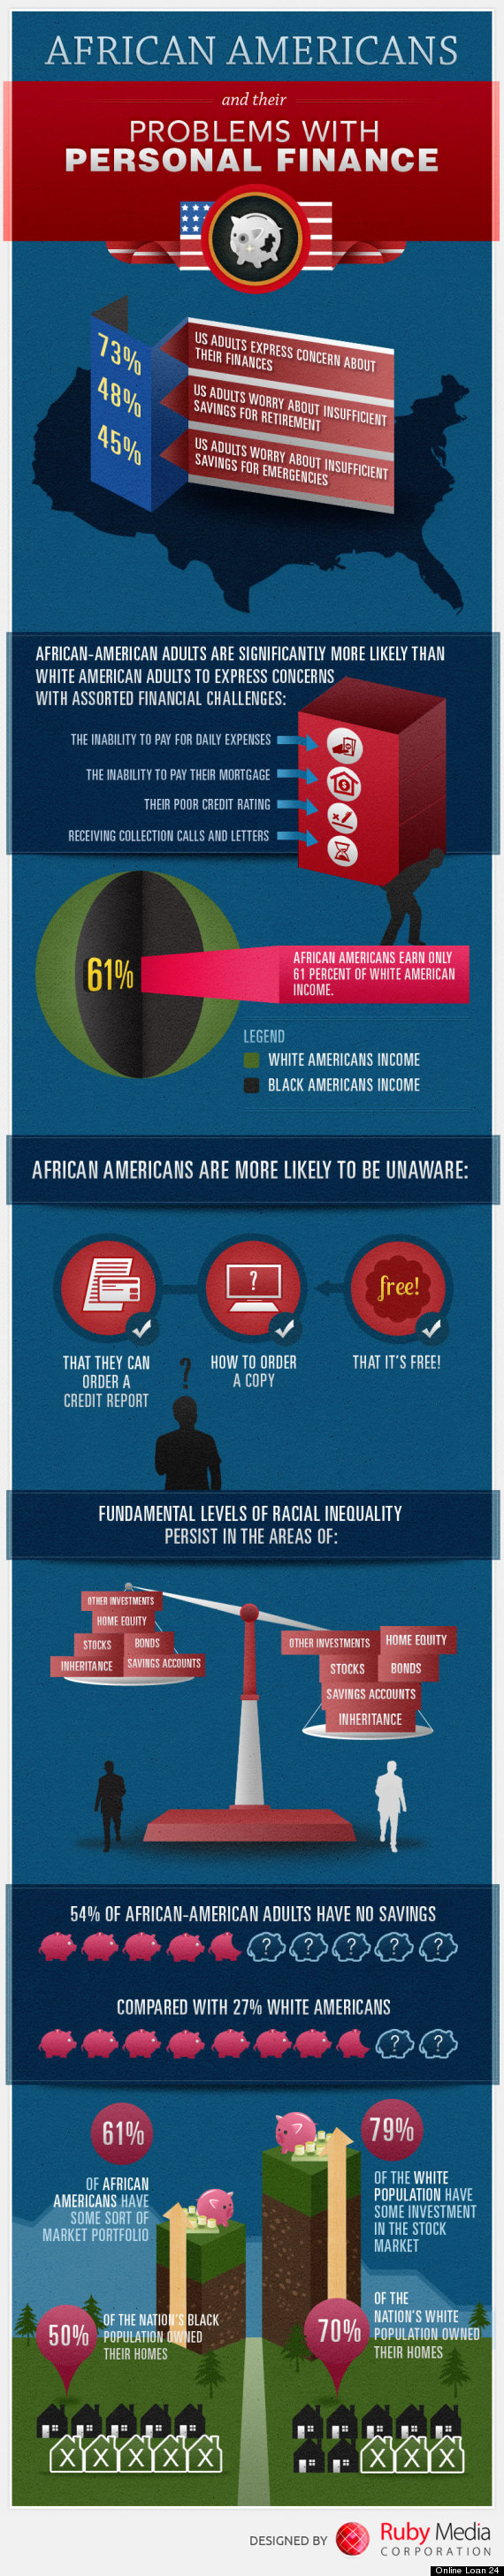 african american personal finance infographic